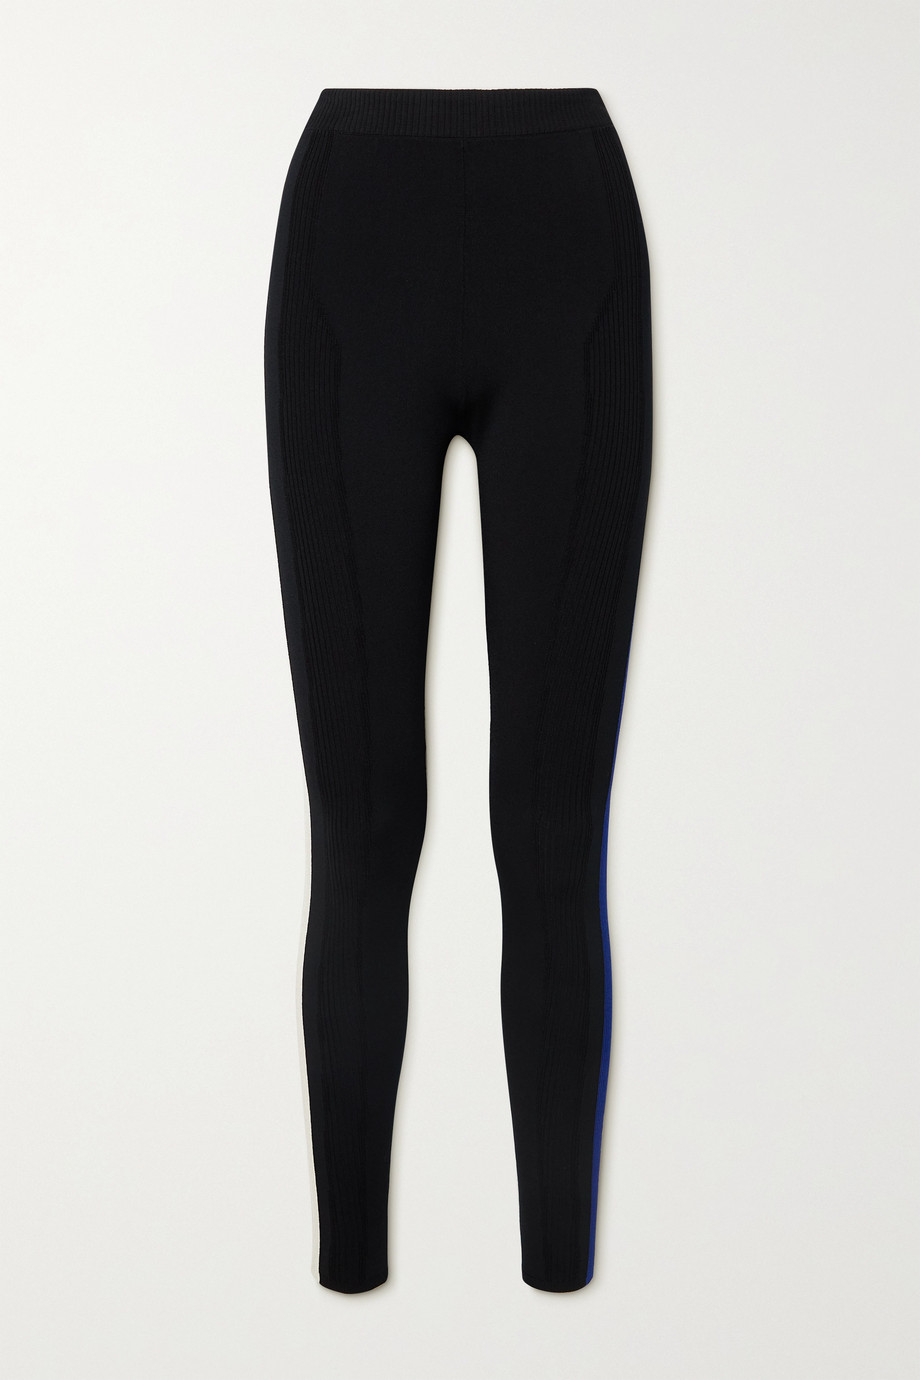 AZ Factory Your Body striped stretch-knit leggings